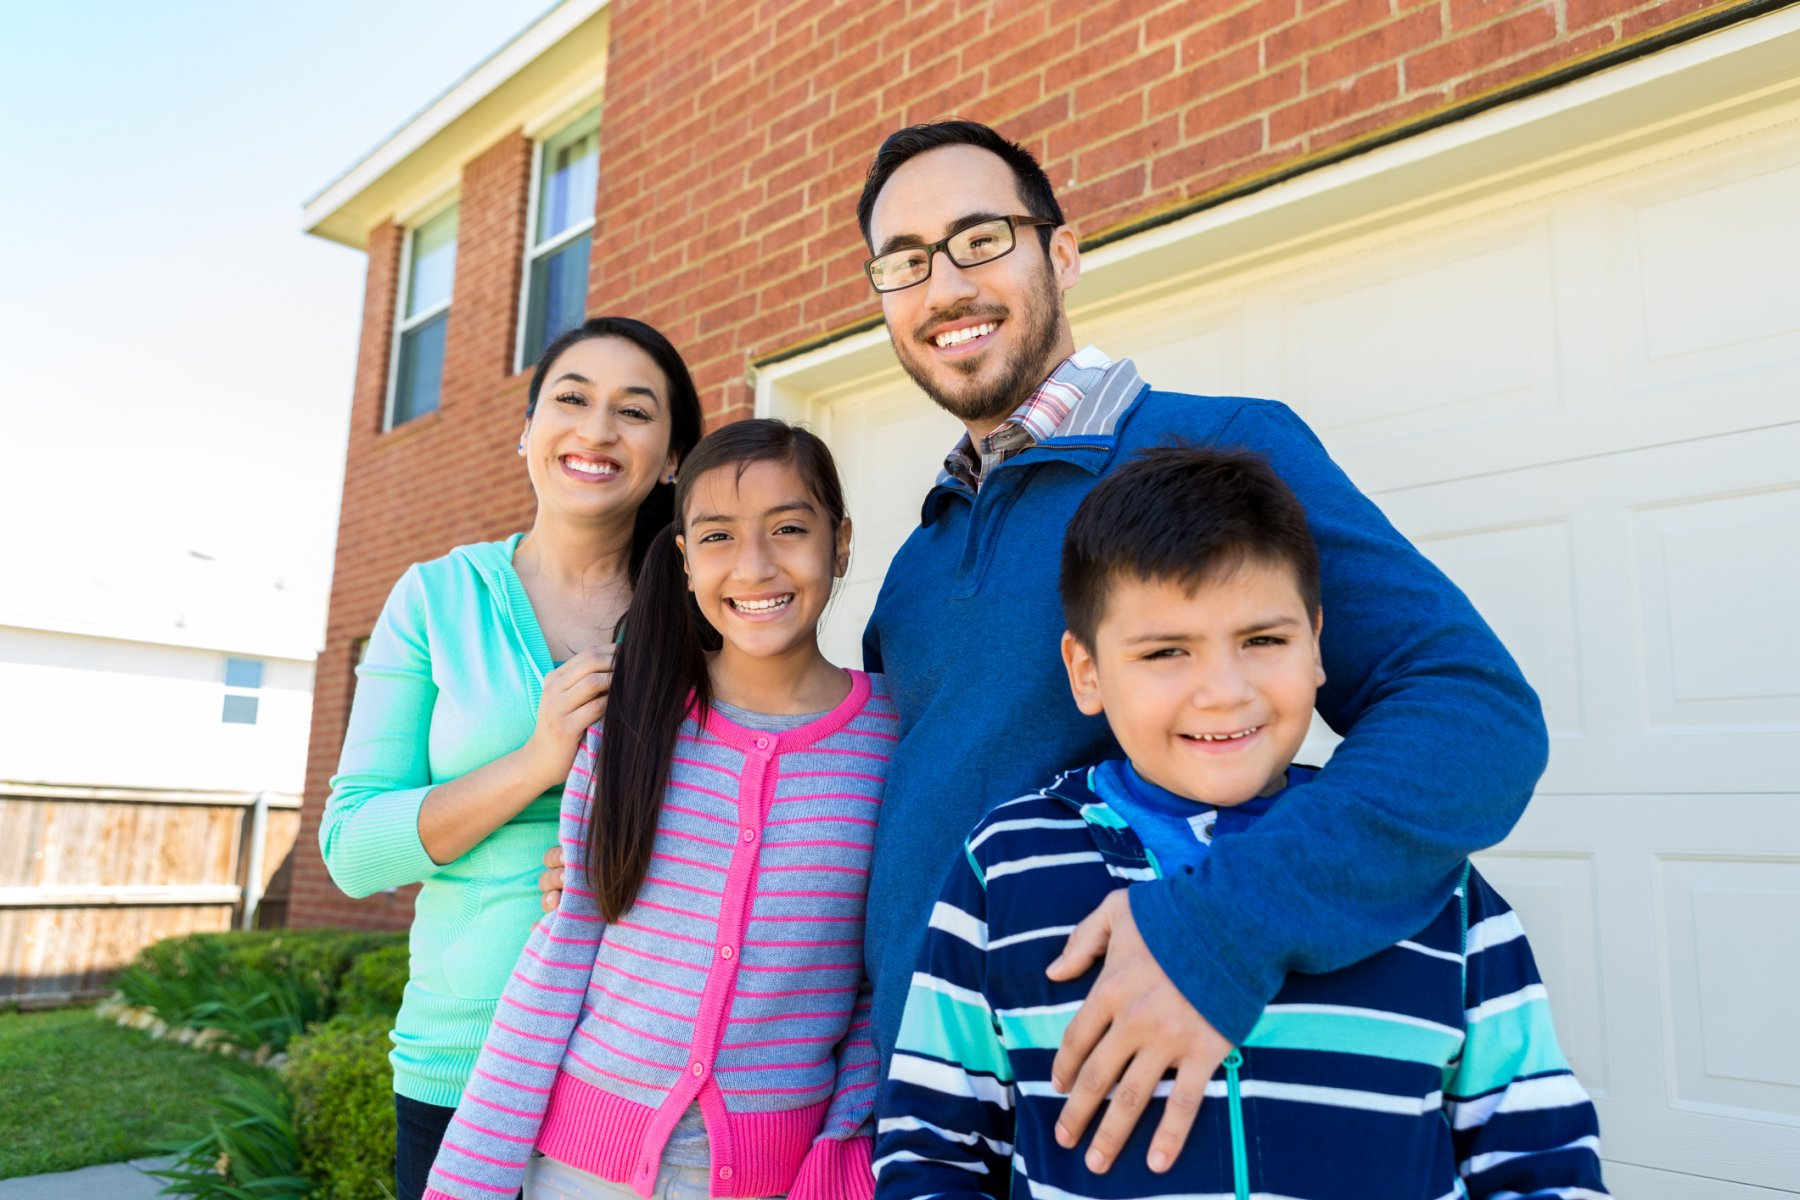 we buy houses Midland TX | city landing page